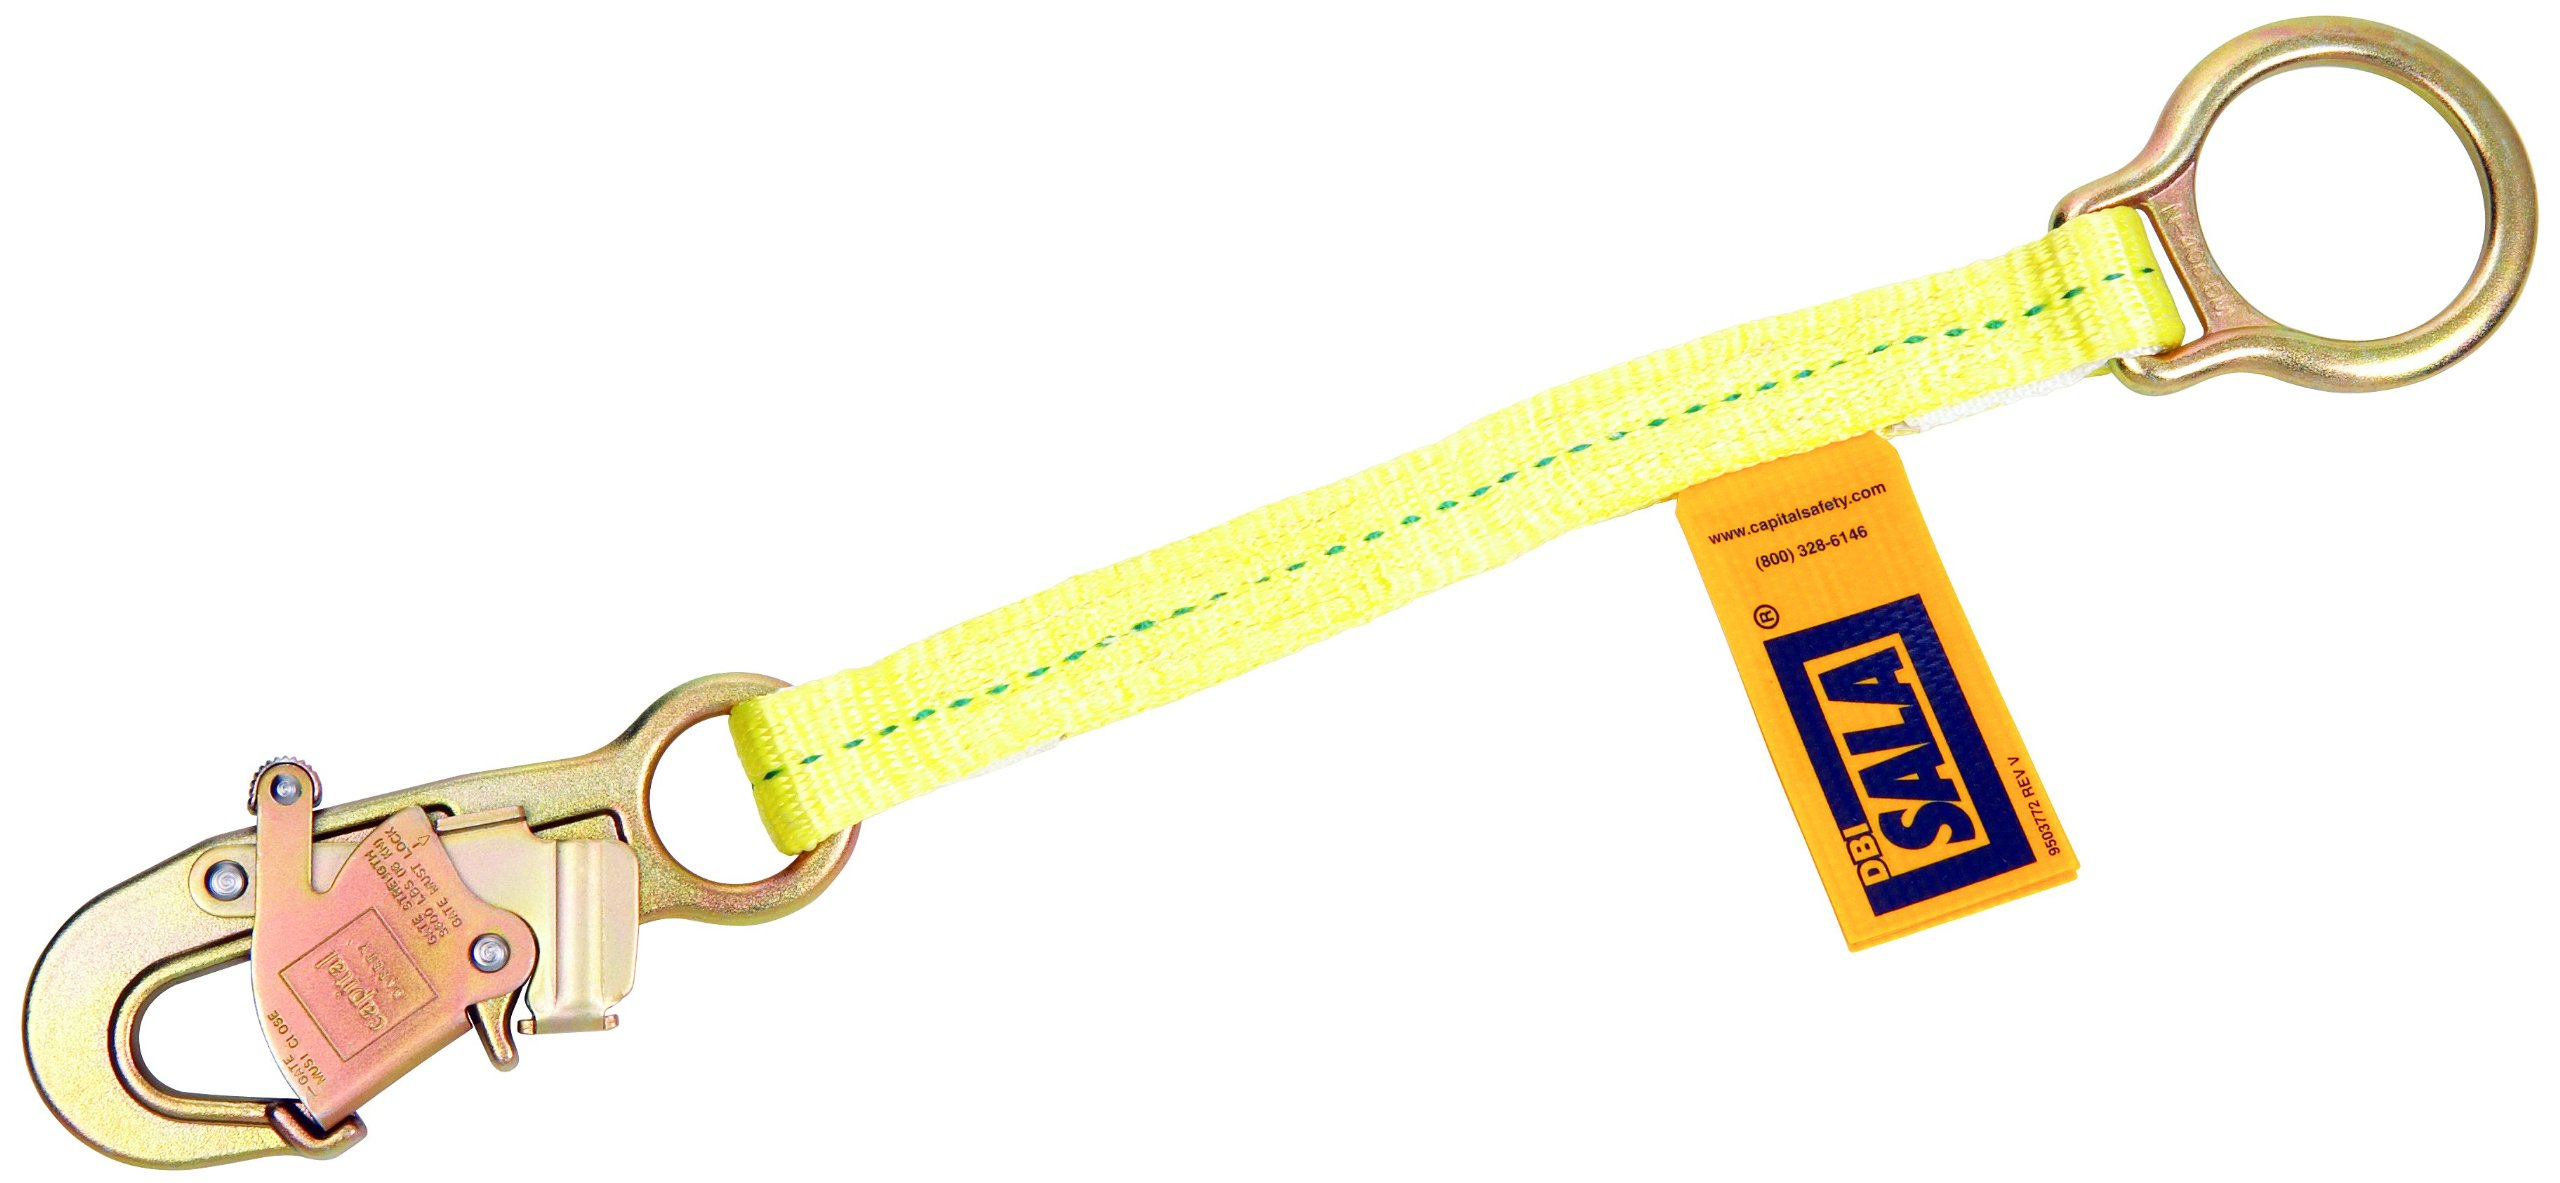 3M DBI-SALA 1231117 D-Ring Extension with Self Locking Snap Hook X 18'', Yellow, 15 ' by 3M Personal Protective Equipment (Image #1)